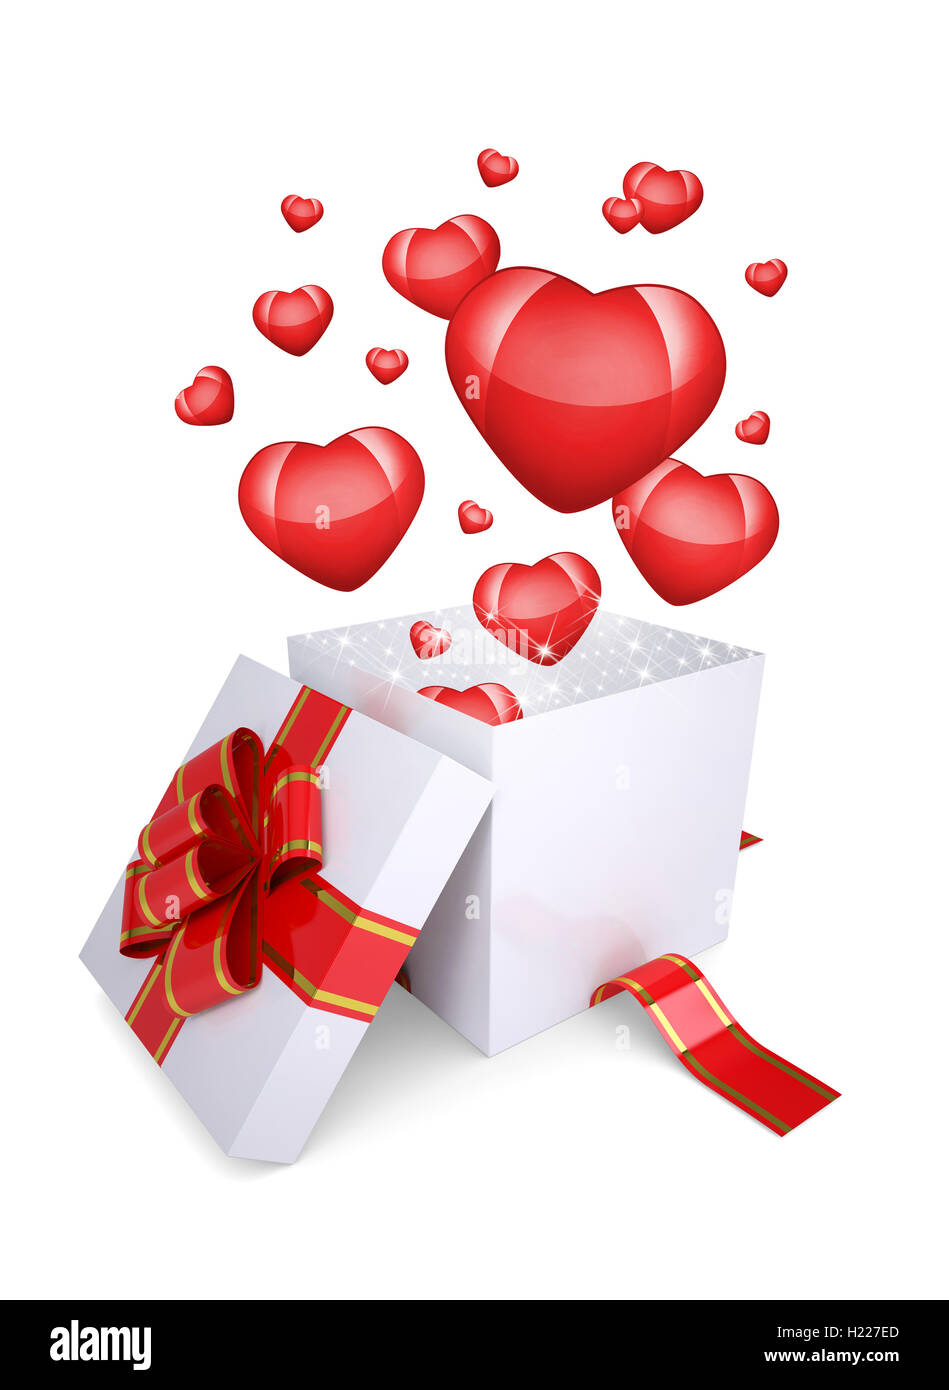 Red hearts fly out of an open gift box stock photo 121751685 alamy red hearts fly out of an open gift box negle Gallery